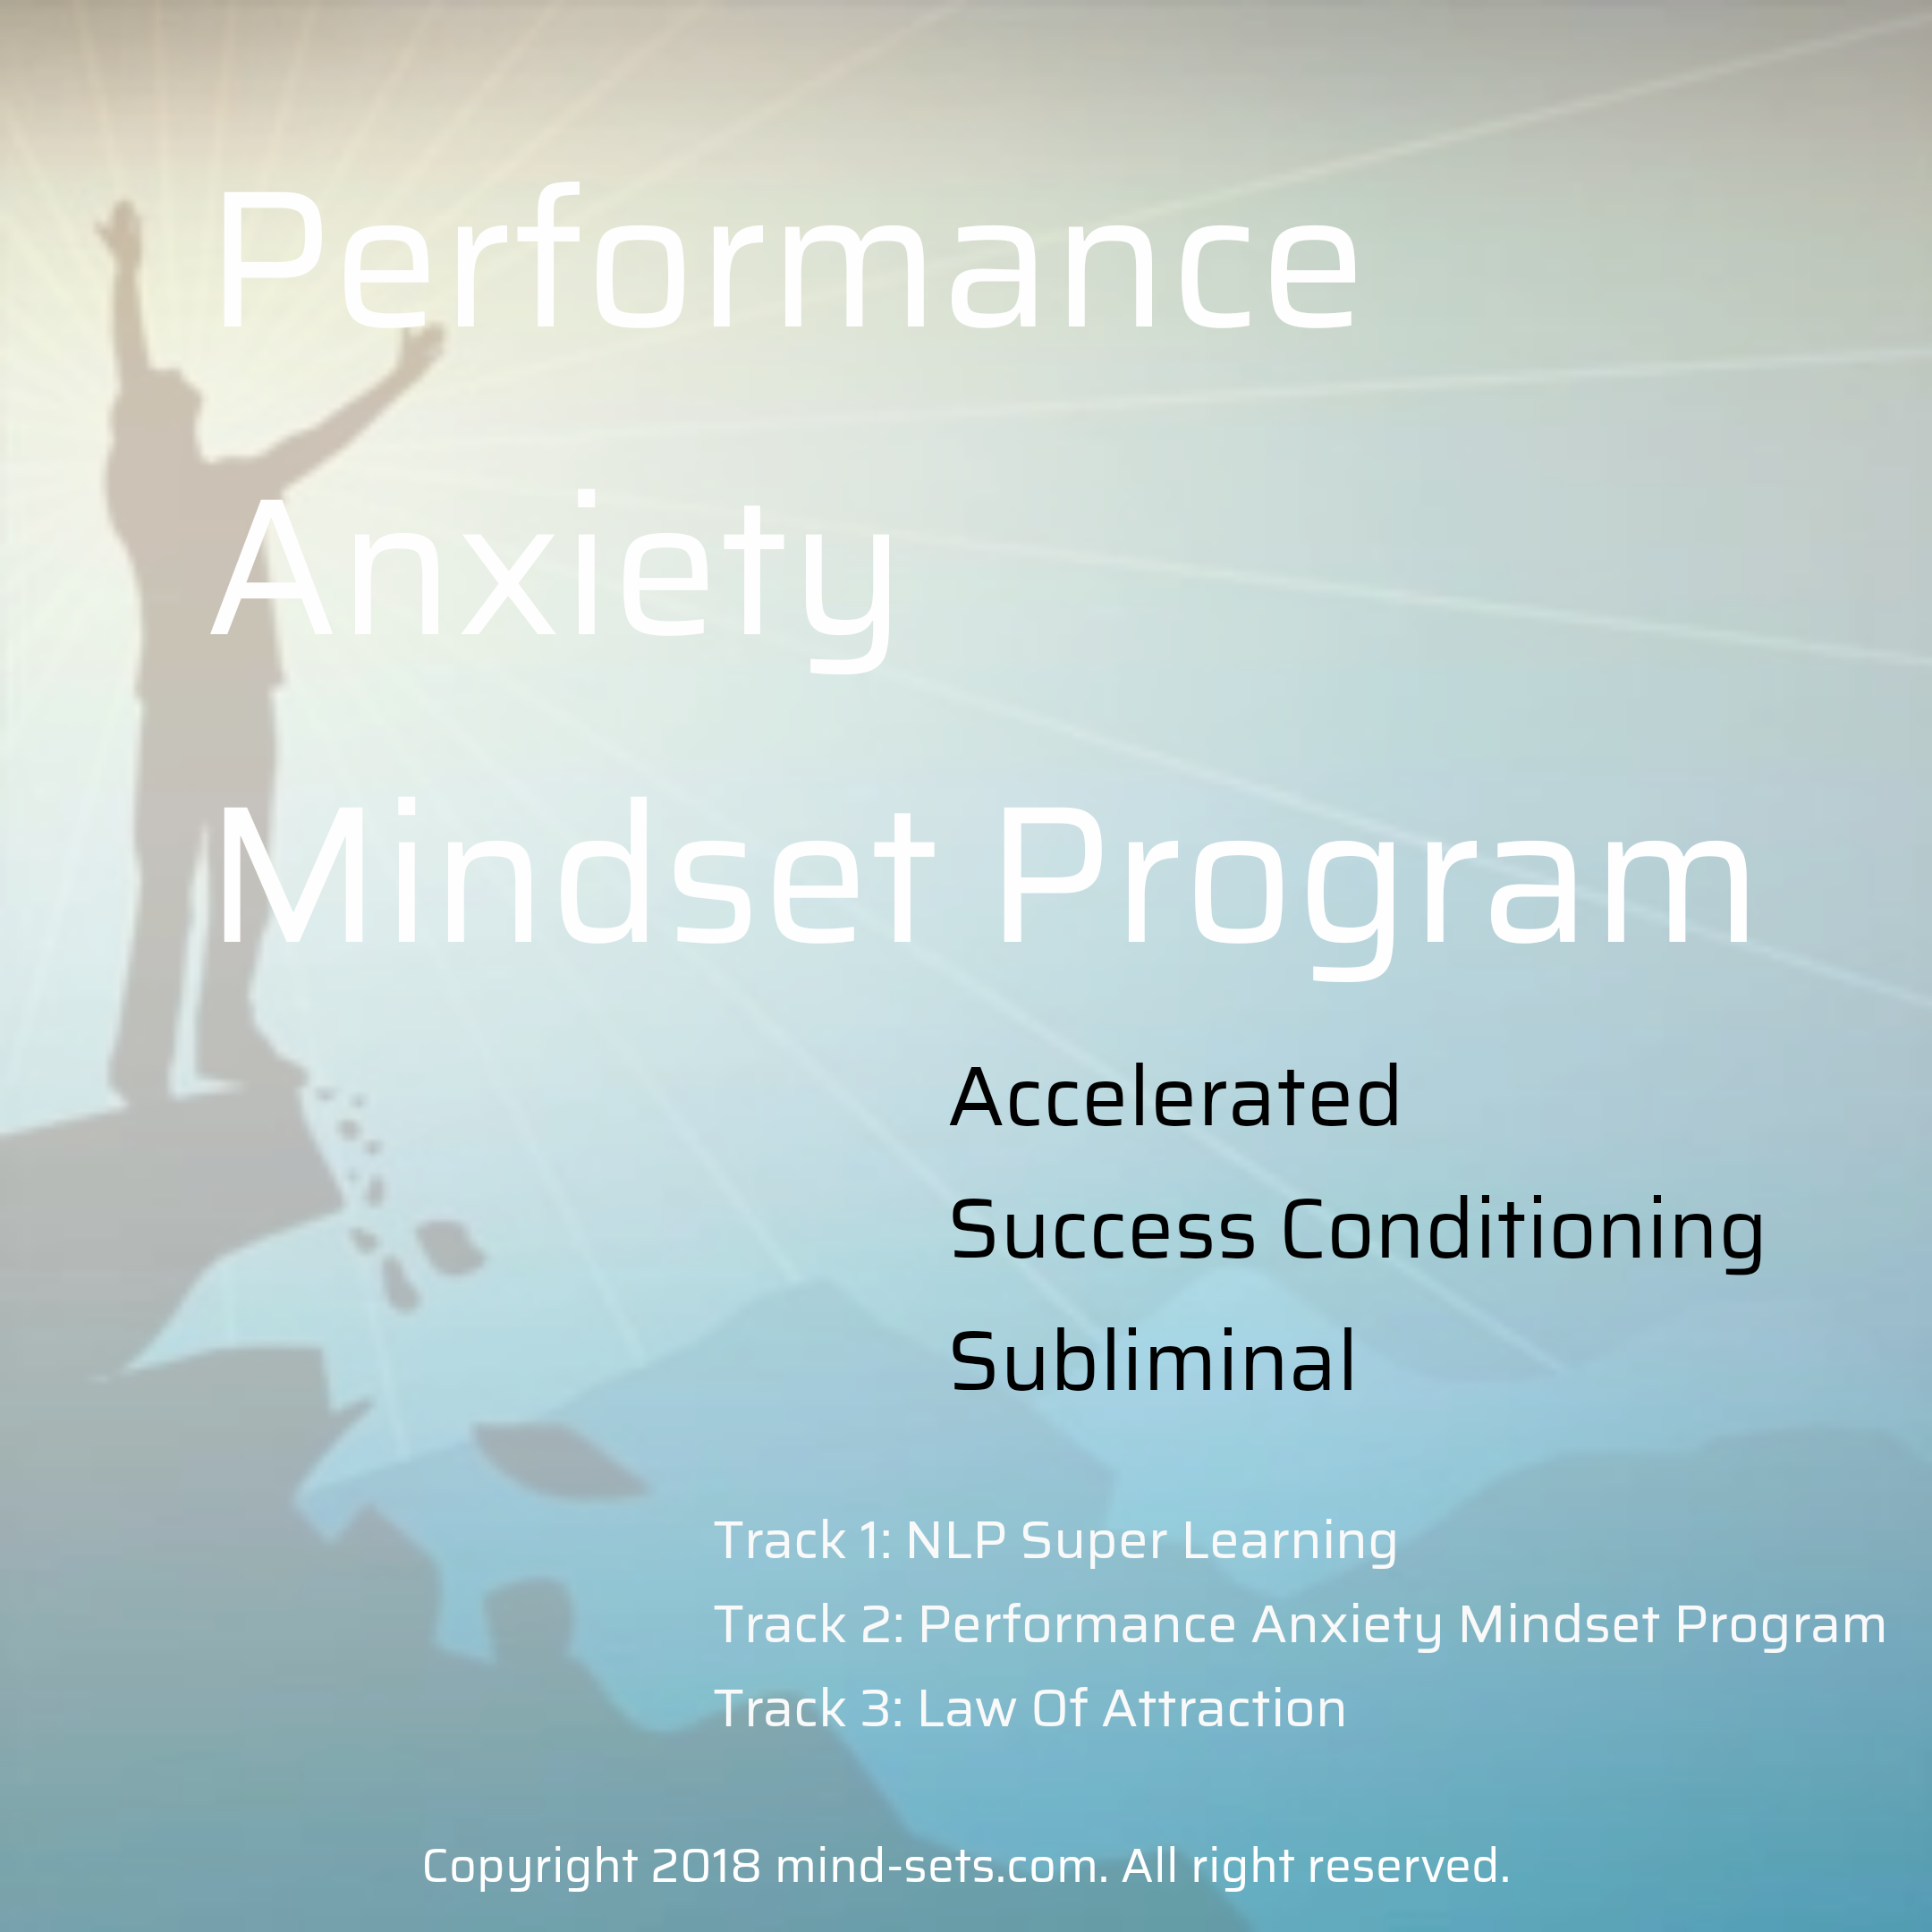 Performance Anxiety Mindset Program